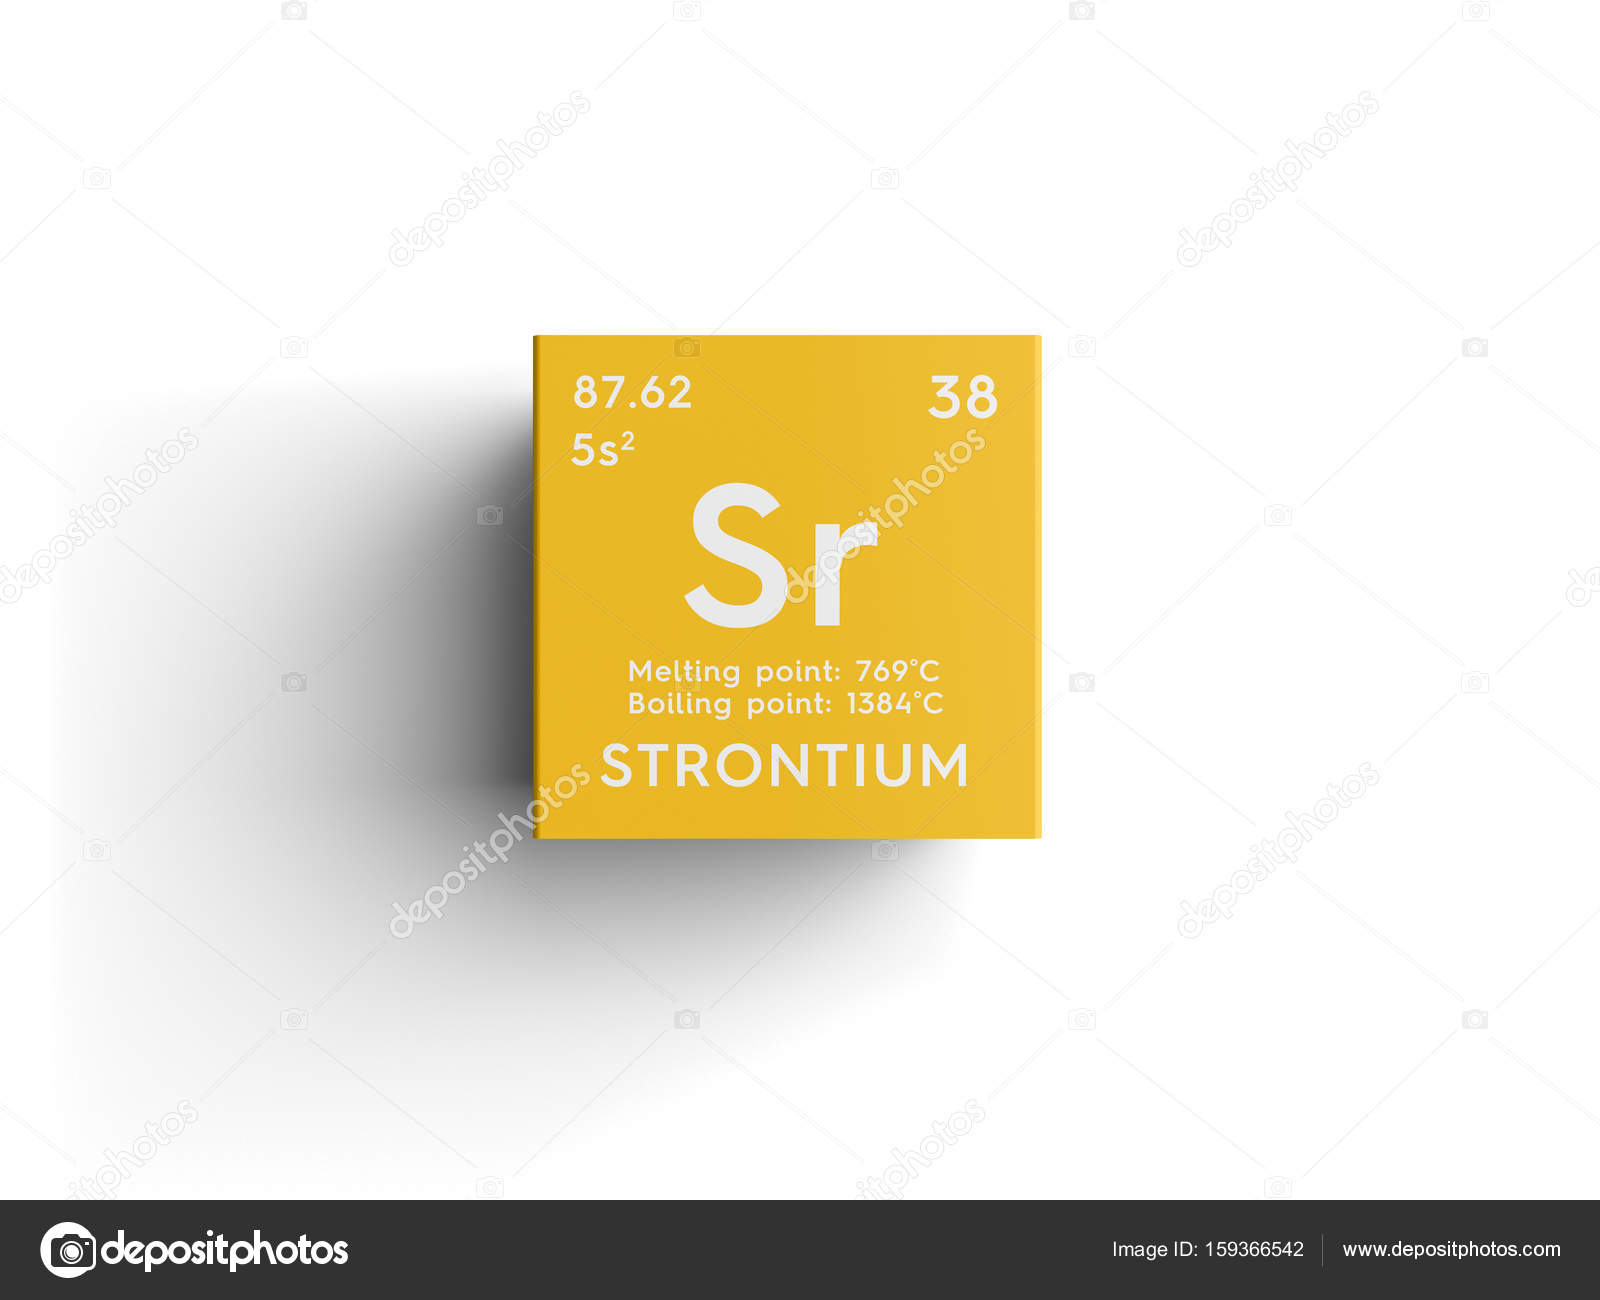 Chemical symbol of strontium image collections symbol and sign ideas strontium alkaline earth metals chemical element of mendeleevs strontium alkaline earth metals chemical element of mendeleevs biocorpaavc